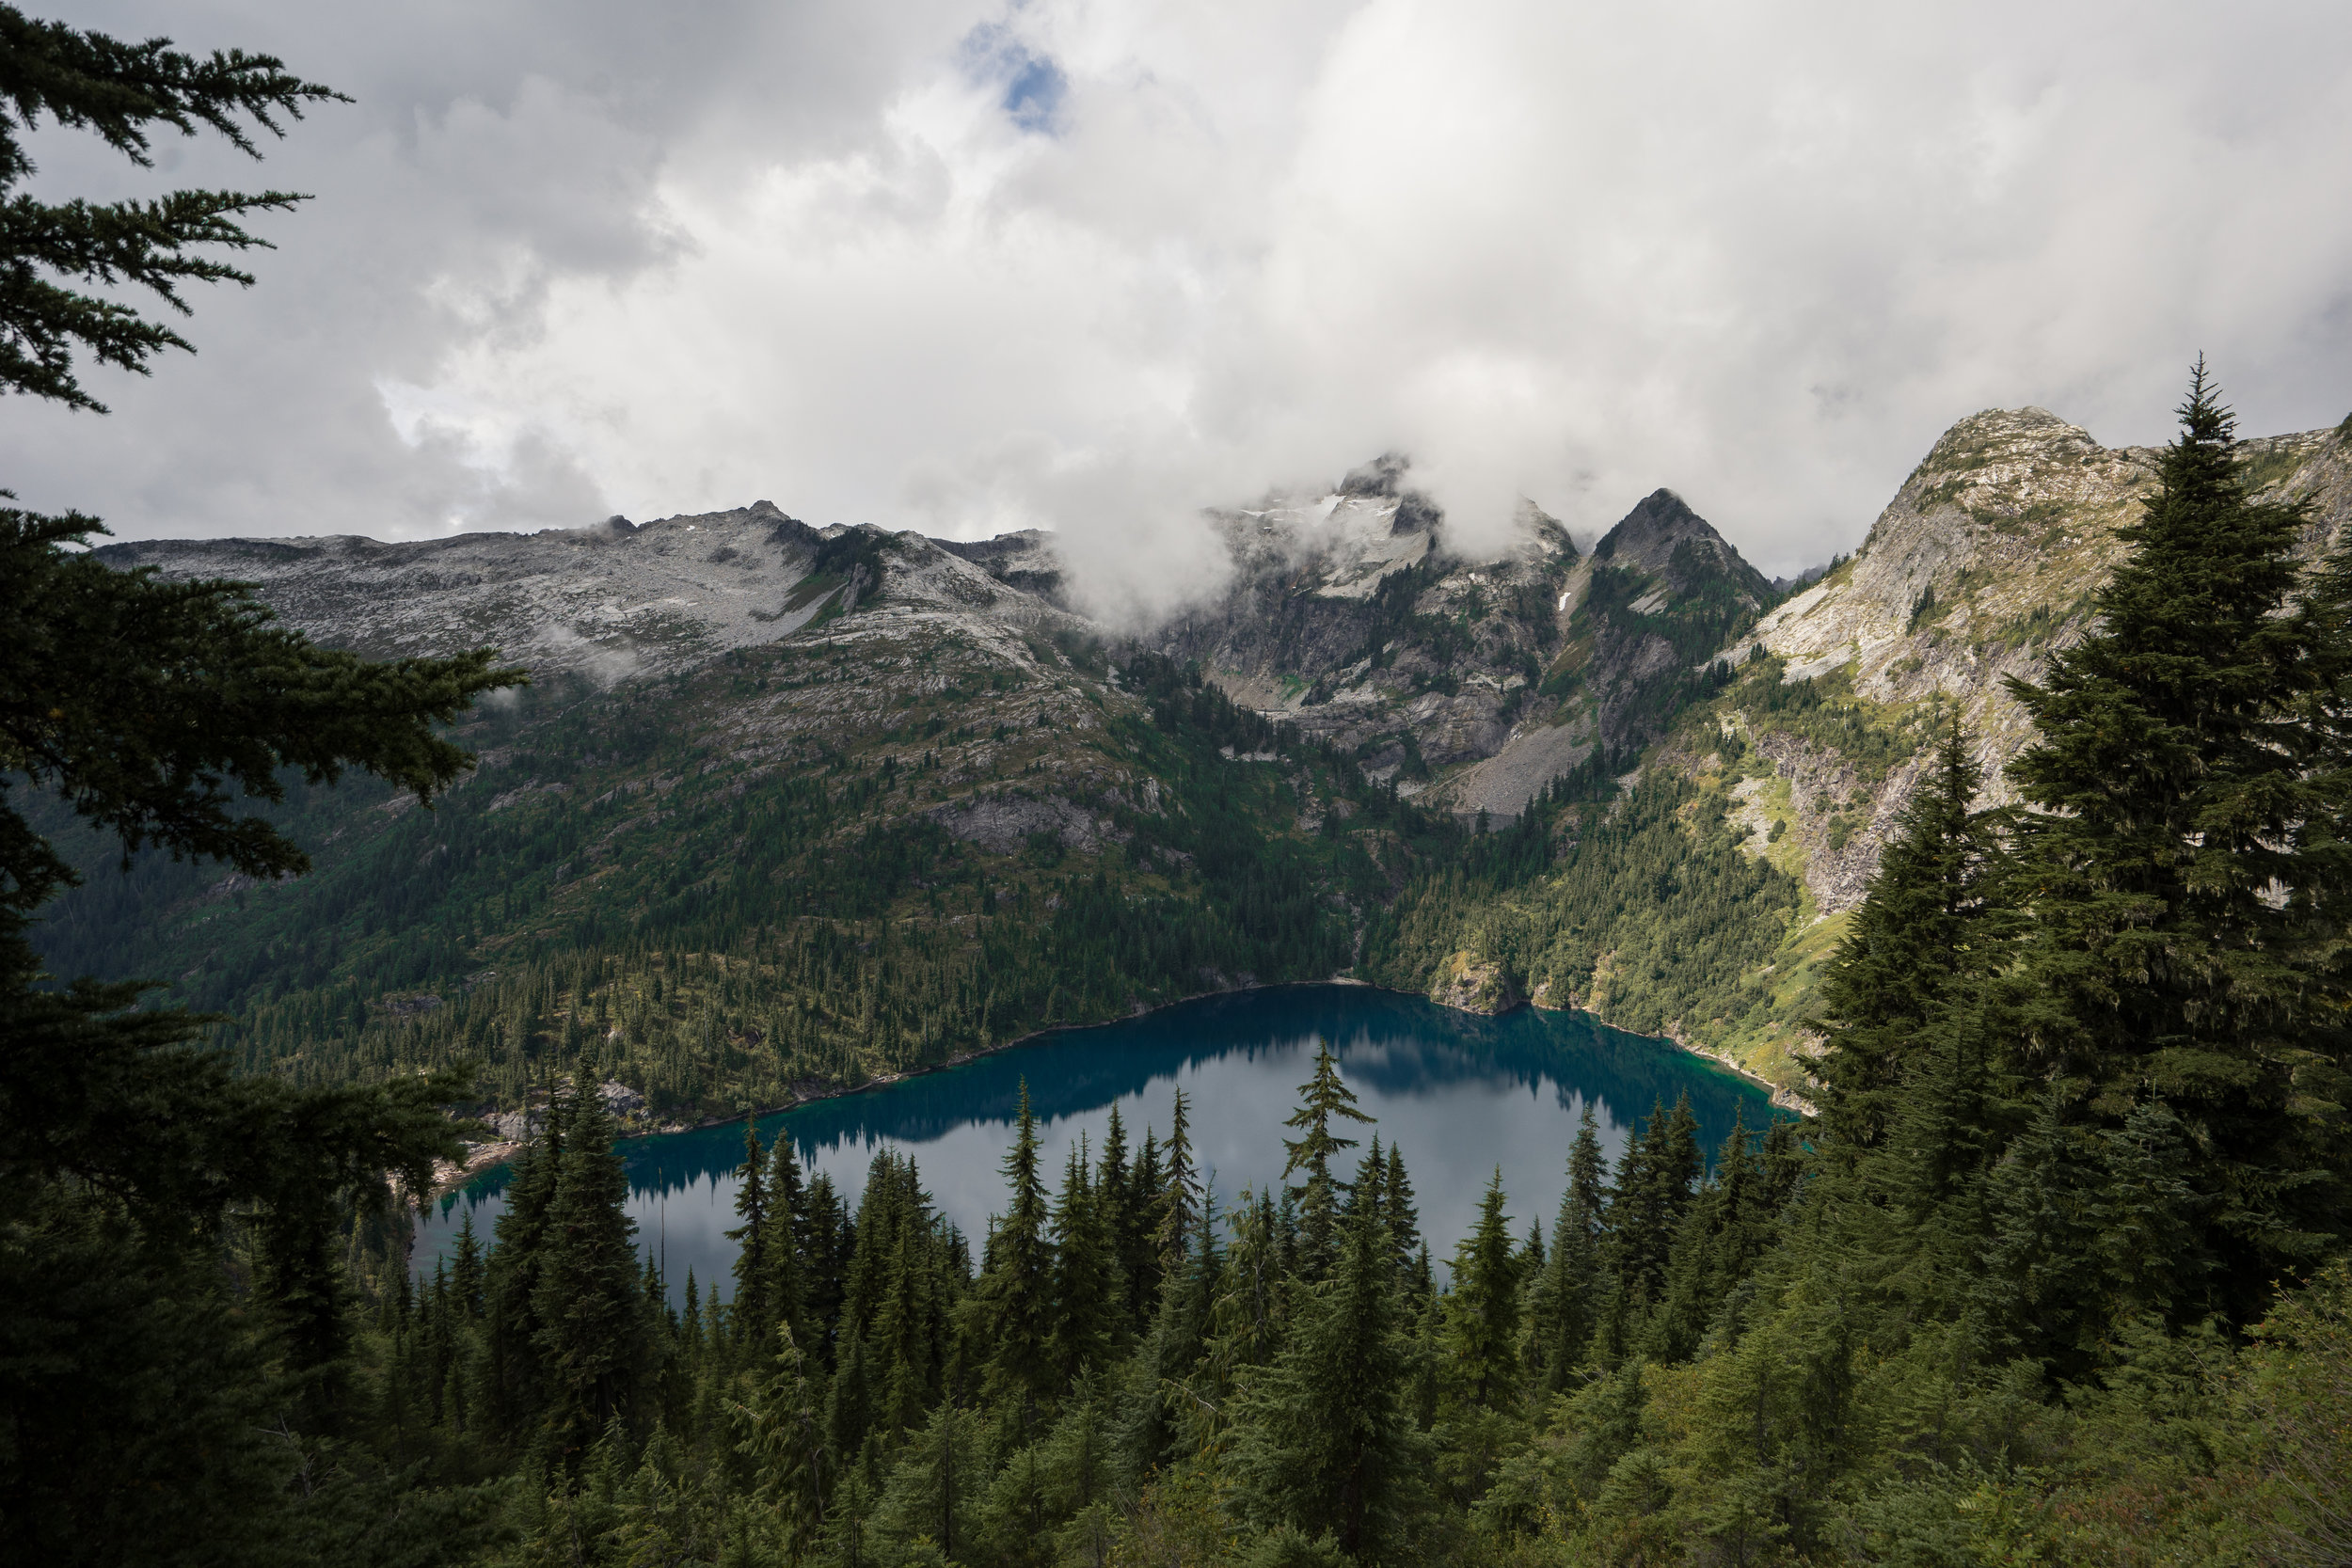 Thornton Lakes in North Cascades National Park in Washington